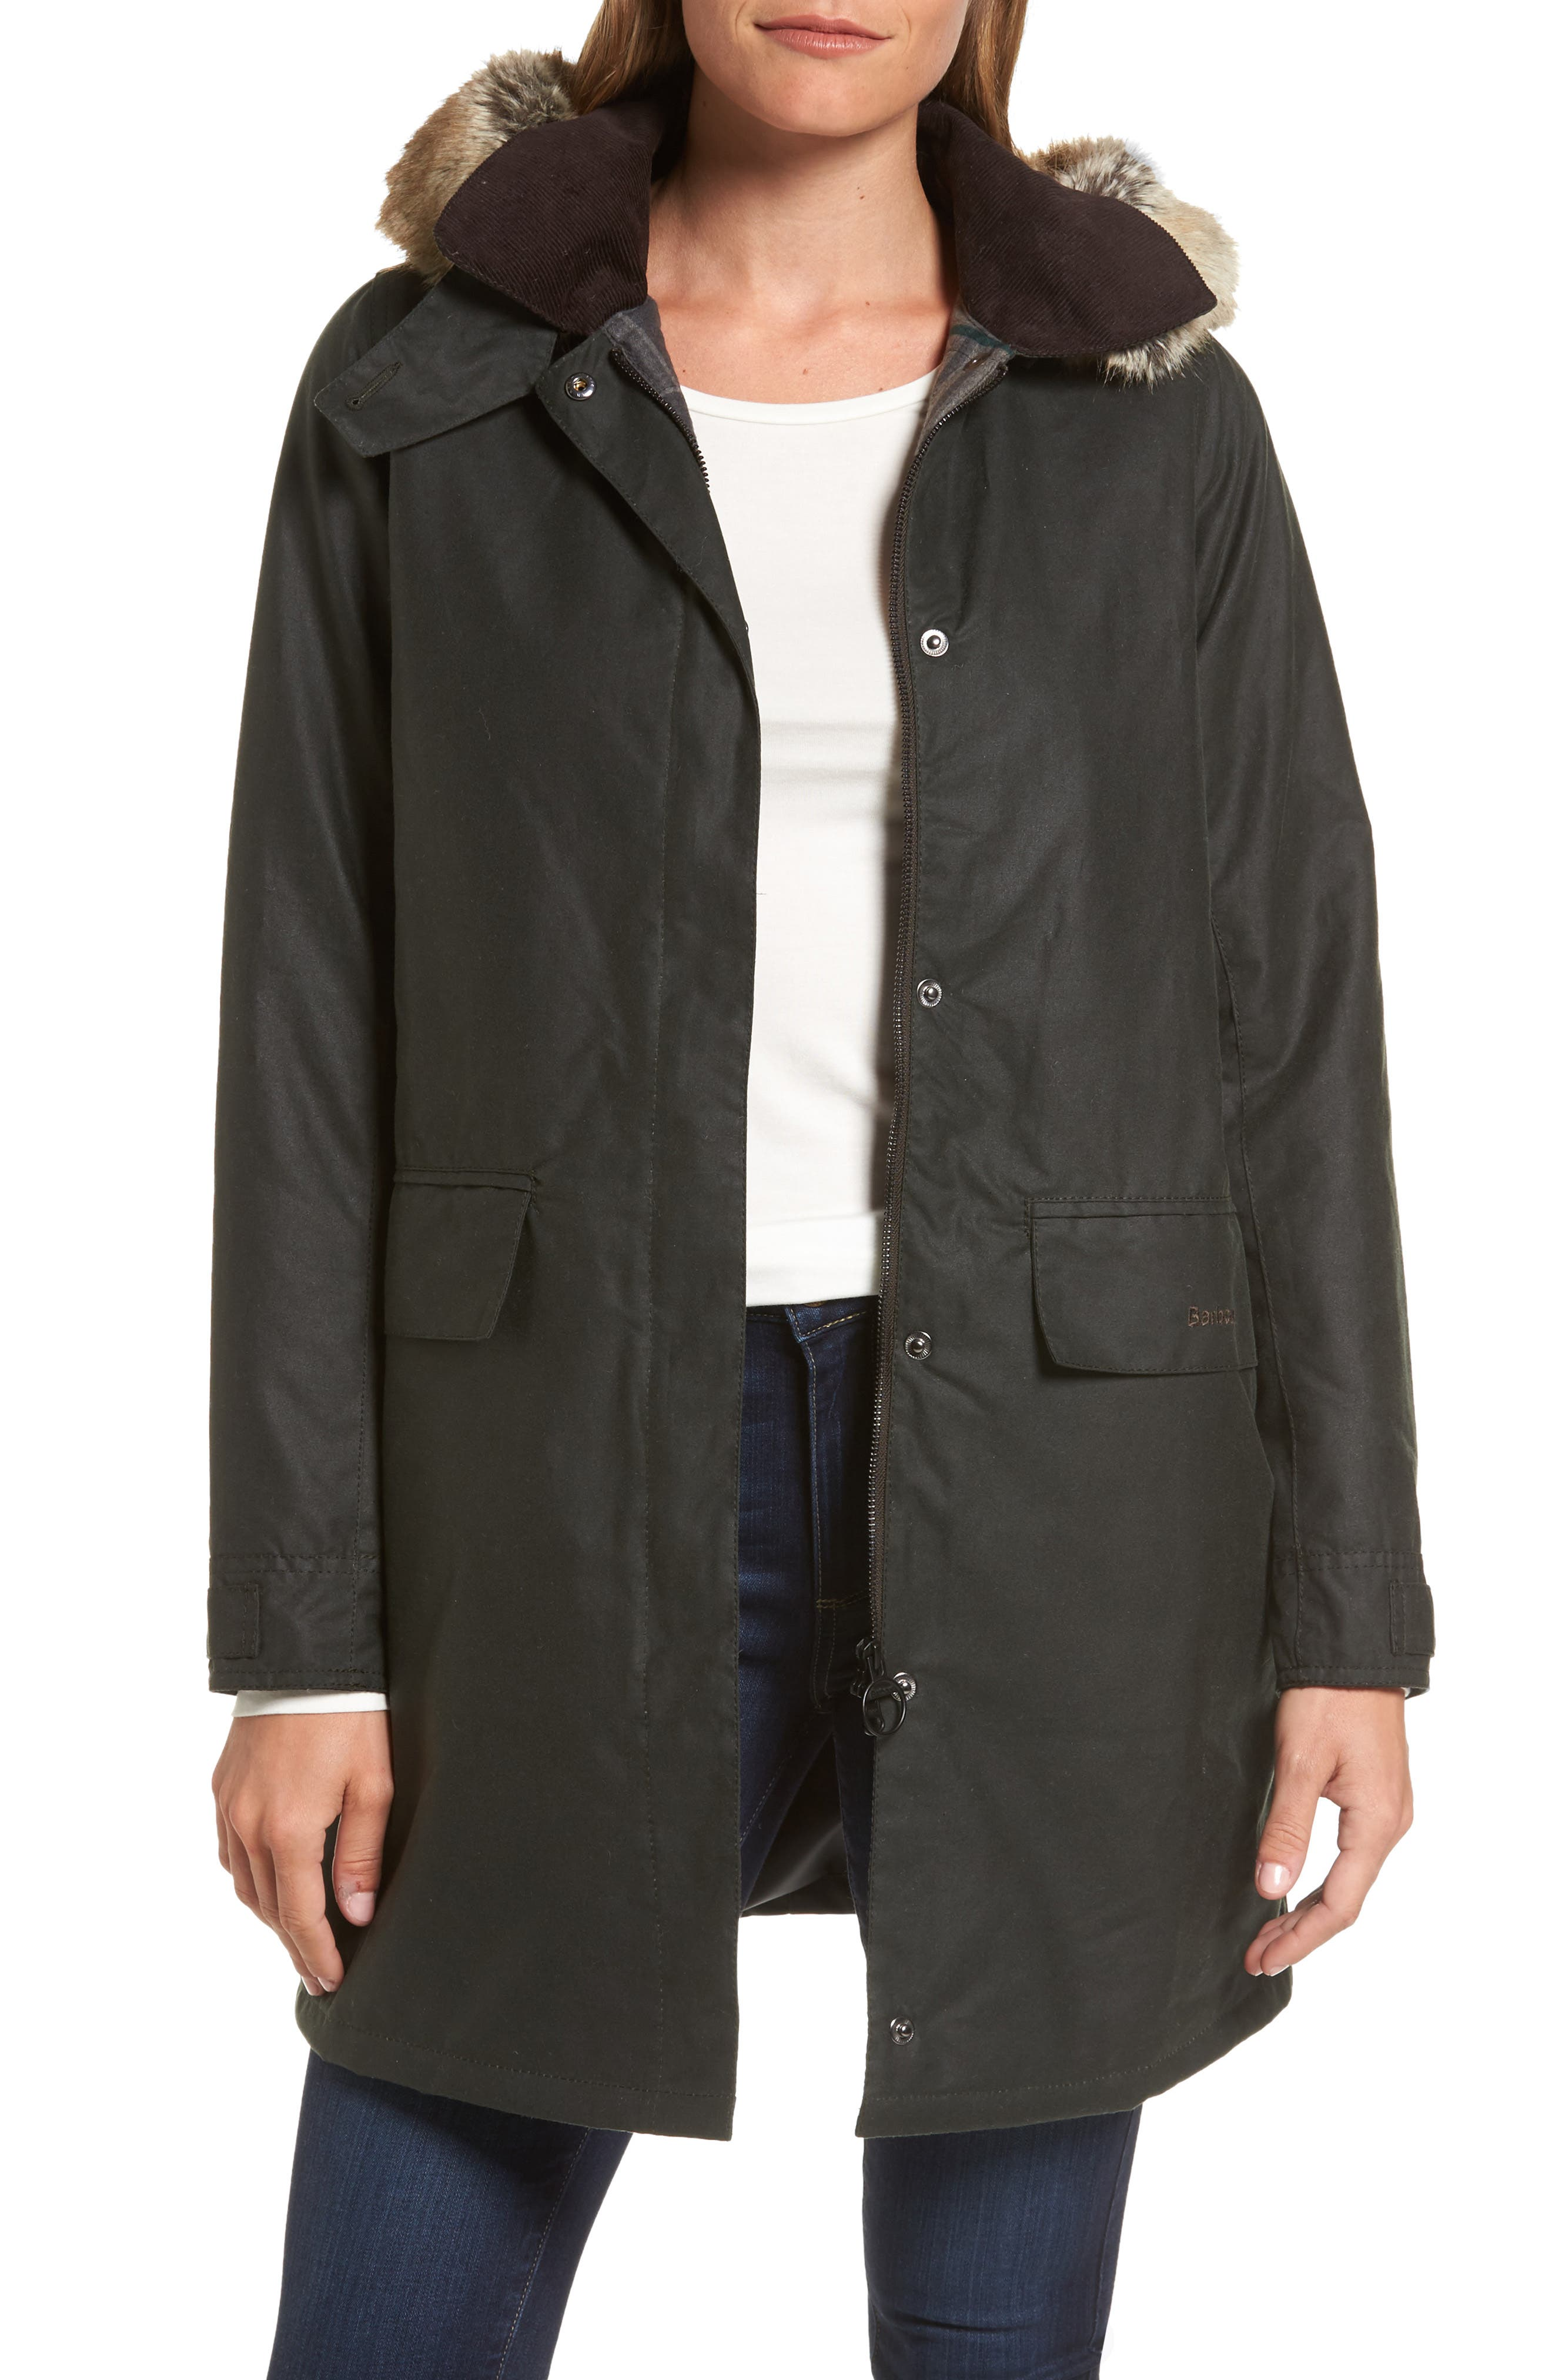 Main Image - Barbour Fortrose Hooded Water Resistant Waxed Canvas Jacket with Faux Fur Trim